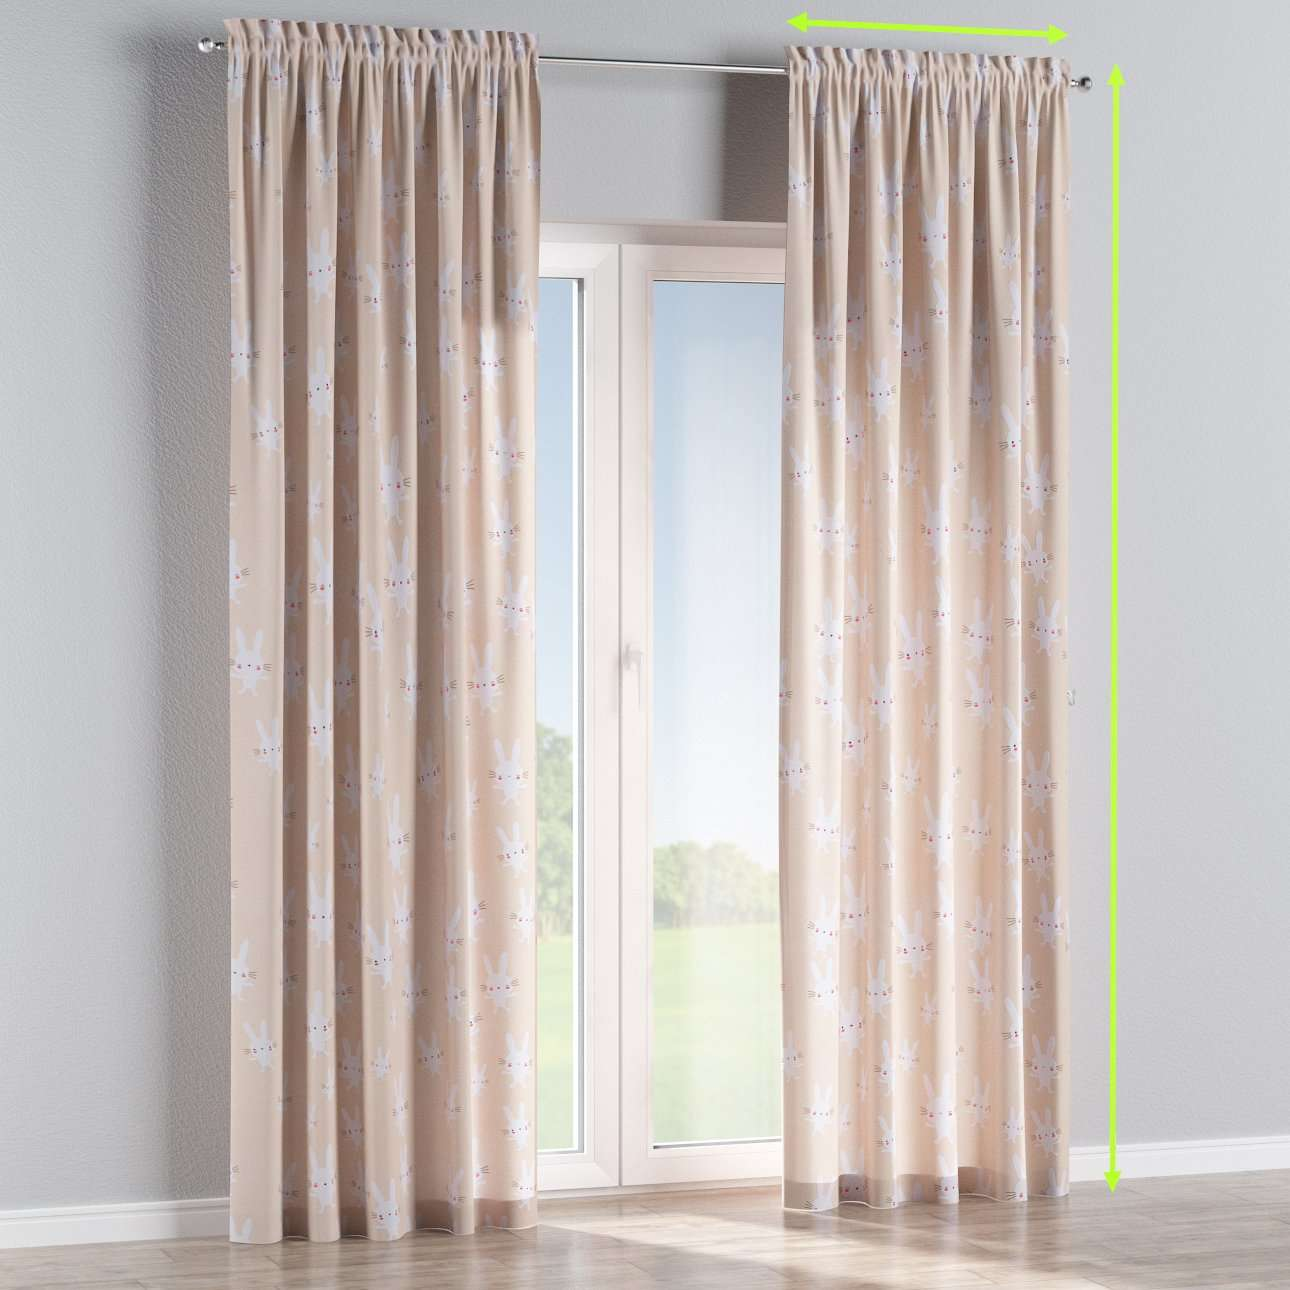 Slot and frill lined curtains in collection Apanona, fabric: 151-00